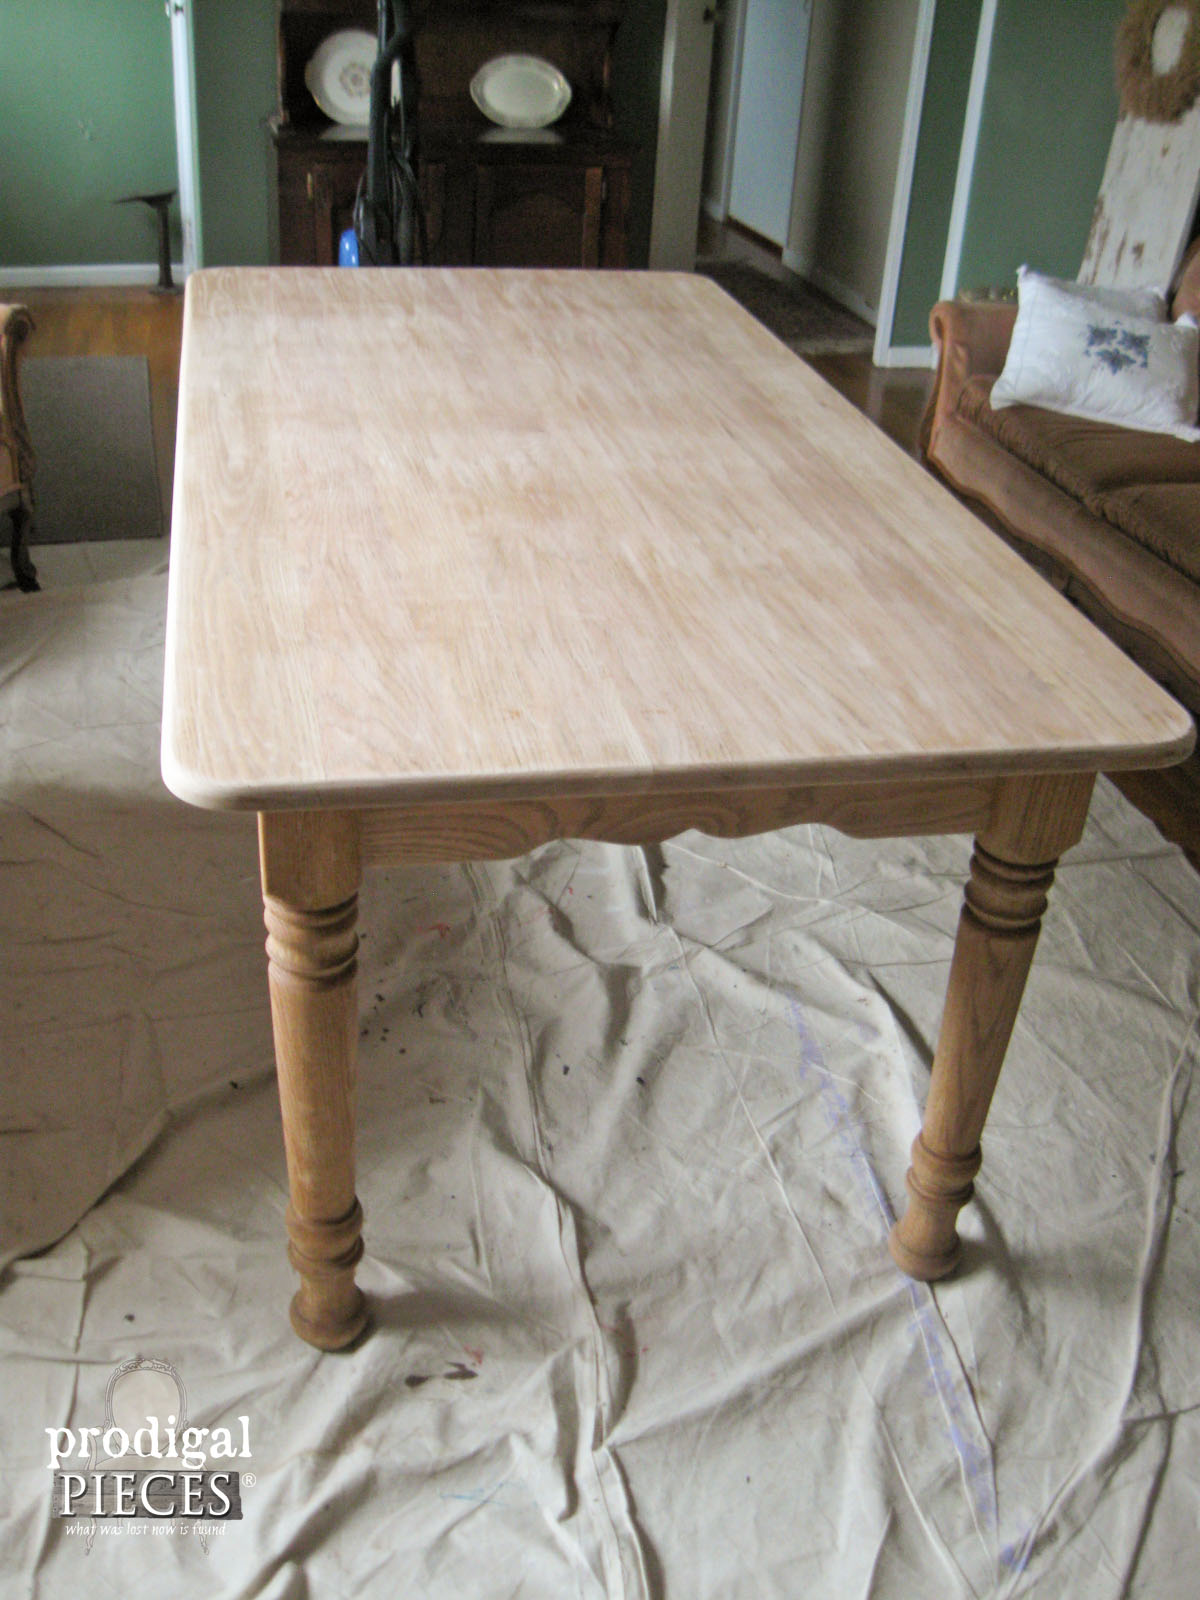 used kitchen table and chairs chair cover hire sunderland whitewashed (or limewashed) wood - prodigal pieces